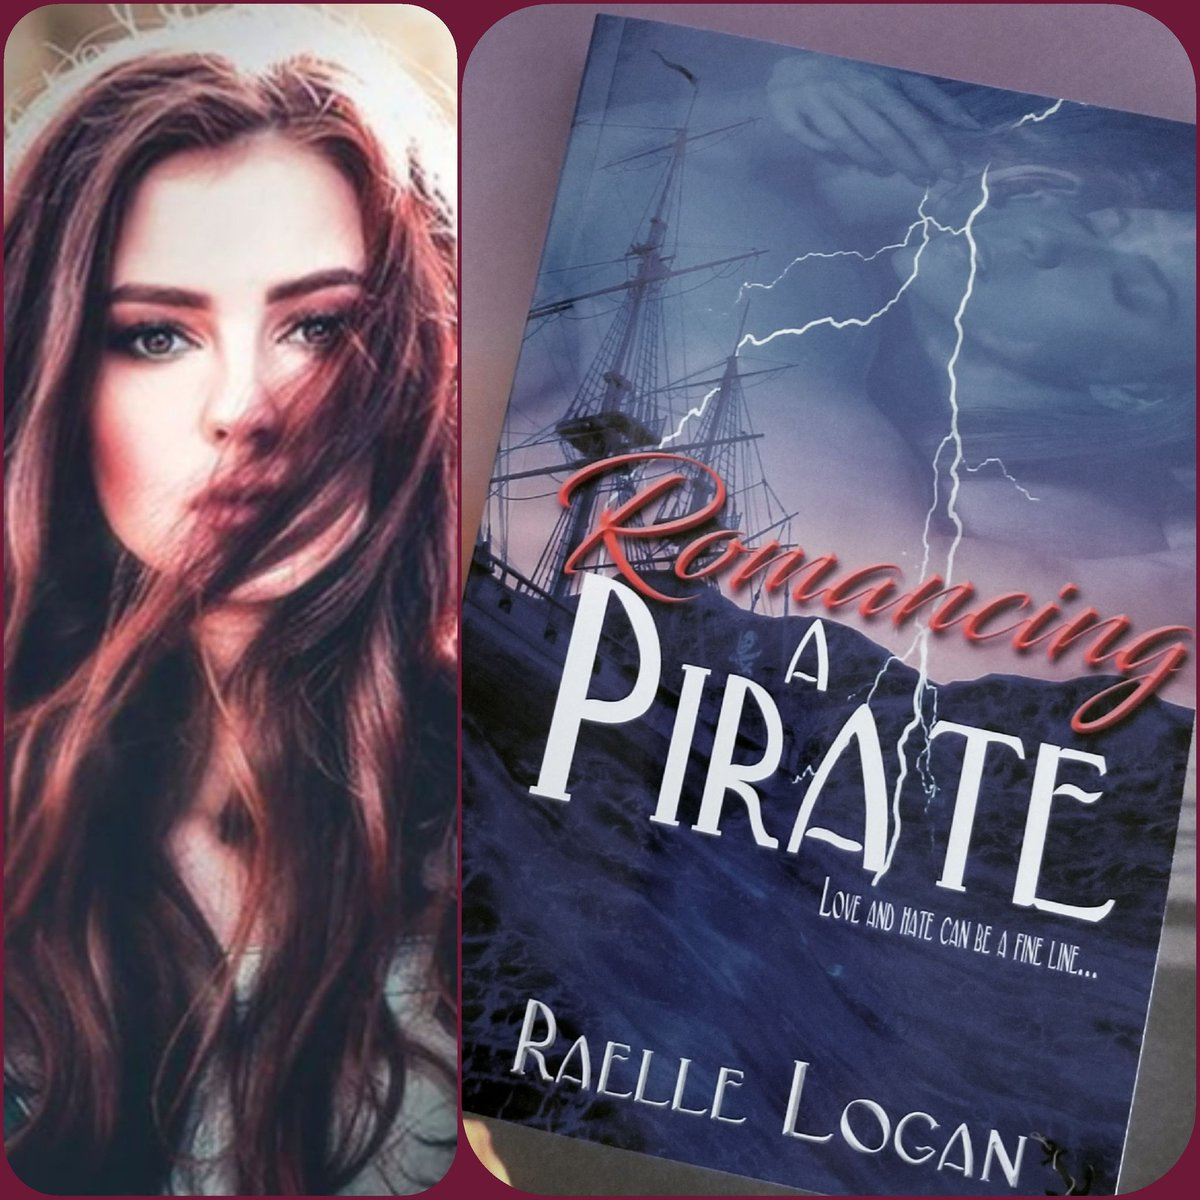 @horrorwriter61 Love a Sizzling Hot Pirate,  a Feisty Beauty, Steamy Romance, a Mysterious Shipwrecked Treasure, Sinister Villains and Dangerous High Seas Adventure?  https://t.co/owXTIqwym7  #book #books #romance #amreading #amwriting #writingcommmunity #writing #writerslift #BlackFriday https://t.co/Wuti5vqWhV